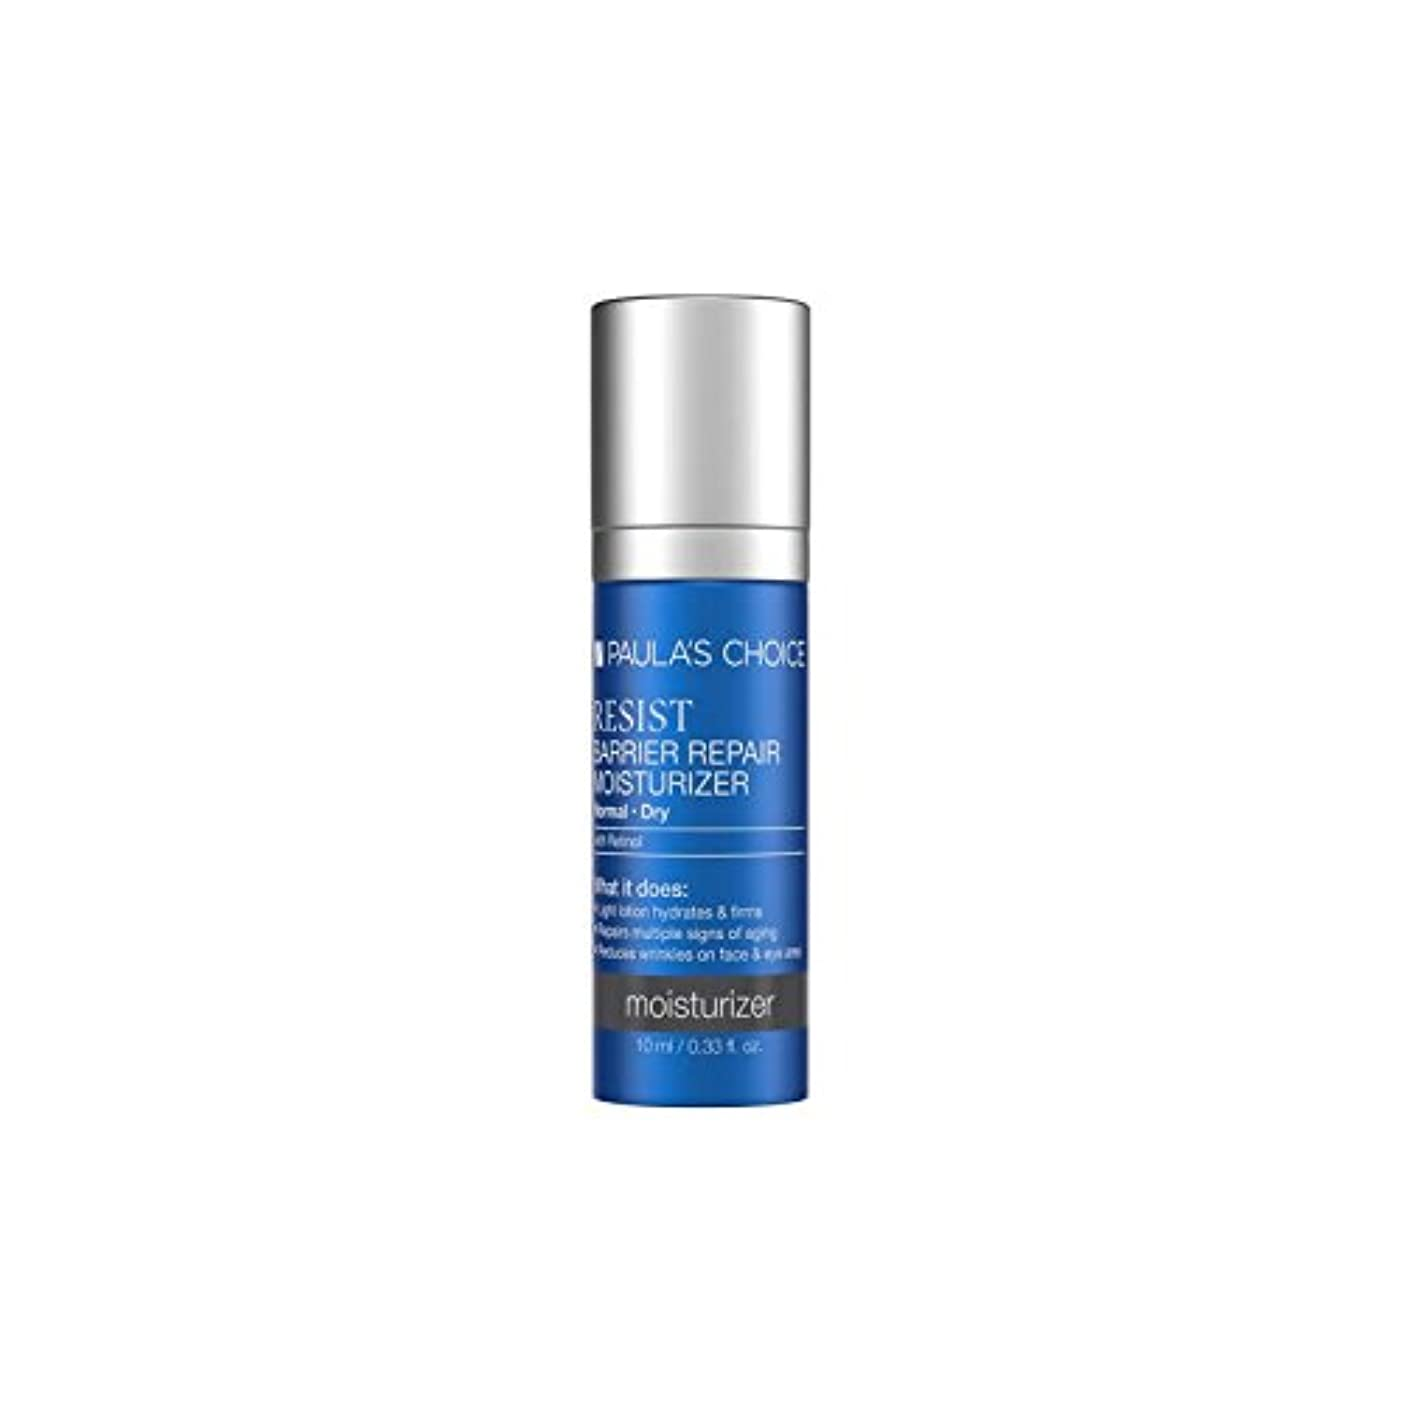 面積感度展望台Paula's Choice Resist Barrier Repair Moisturizer With Retinol - Trial Size (10ml) (Pack of 6) - トライアルサイズ(10ミリリットル...